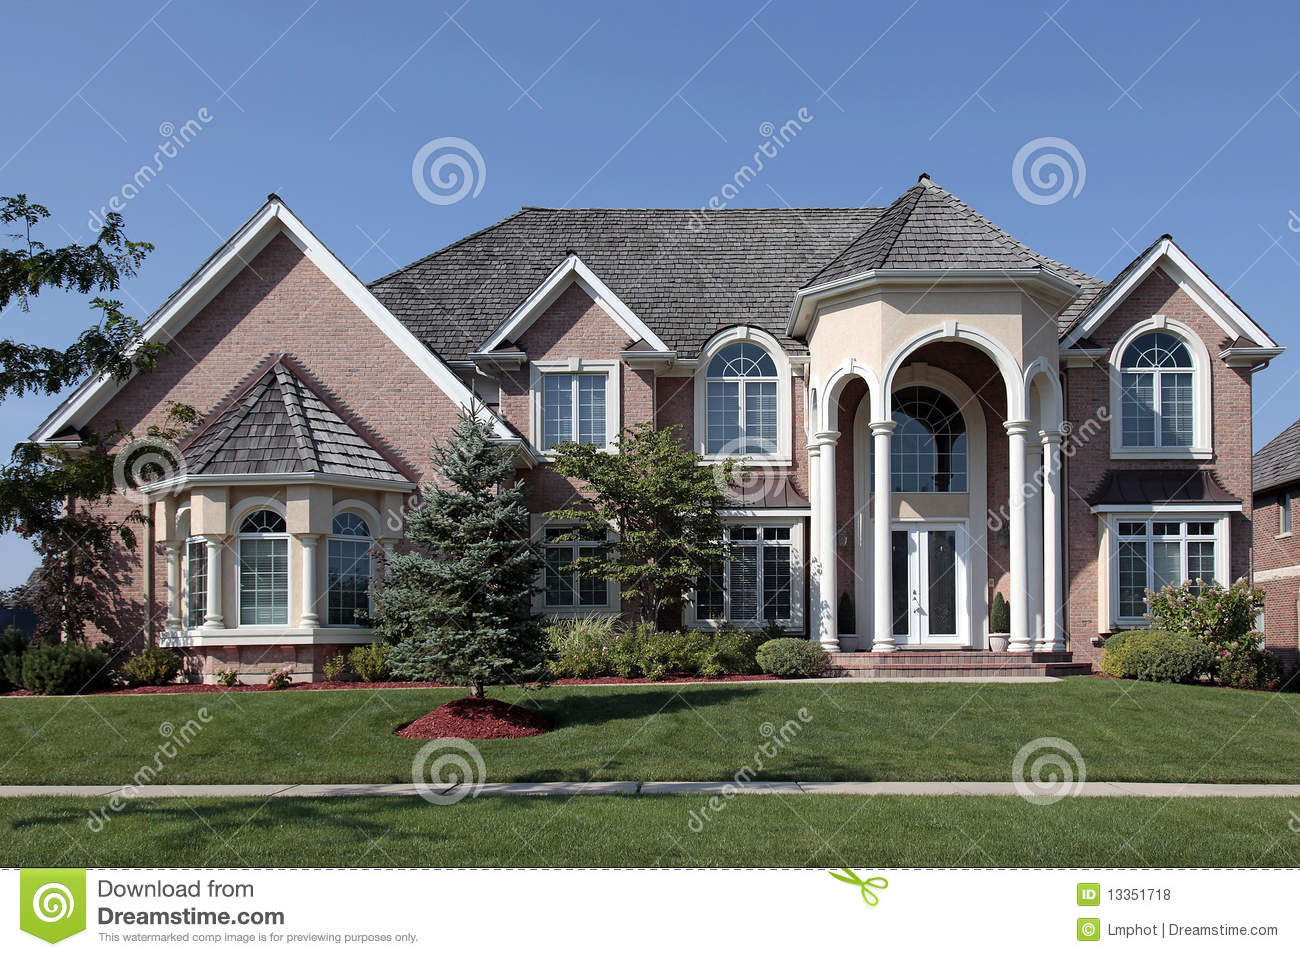 Large Brick Home With Columned Entryway Stock Photo